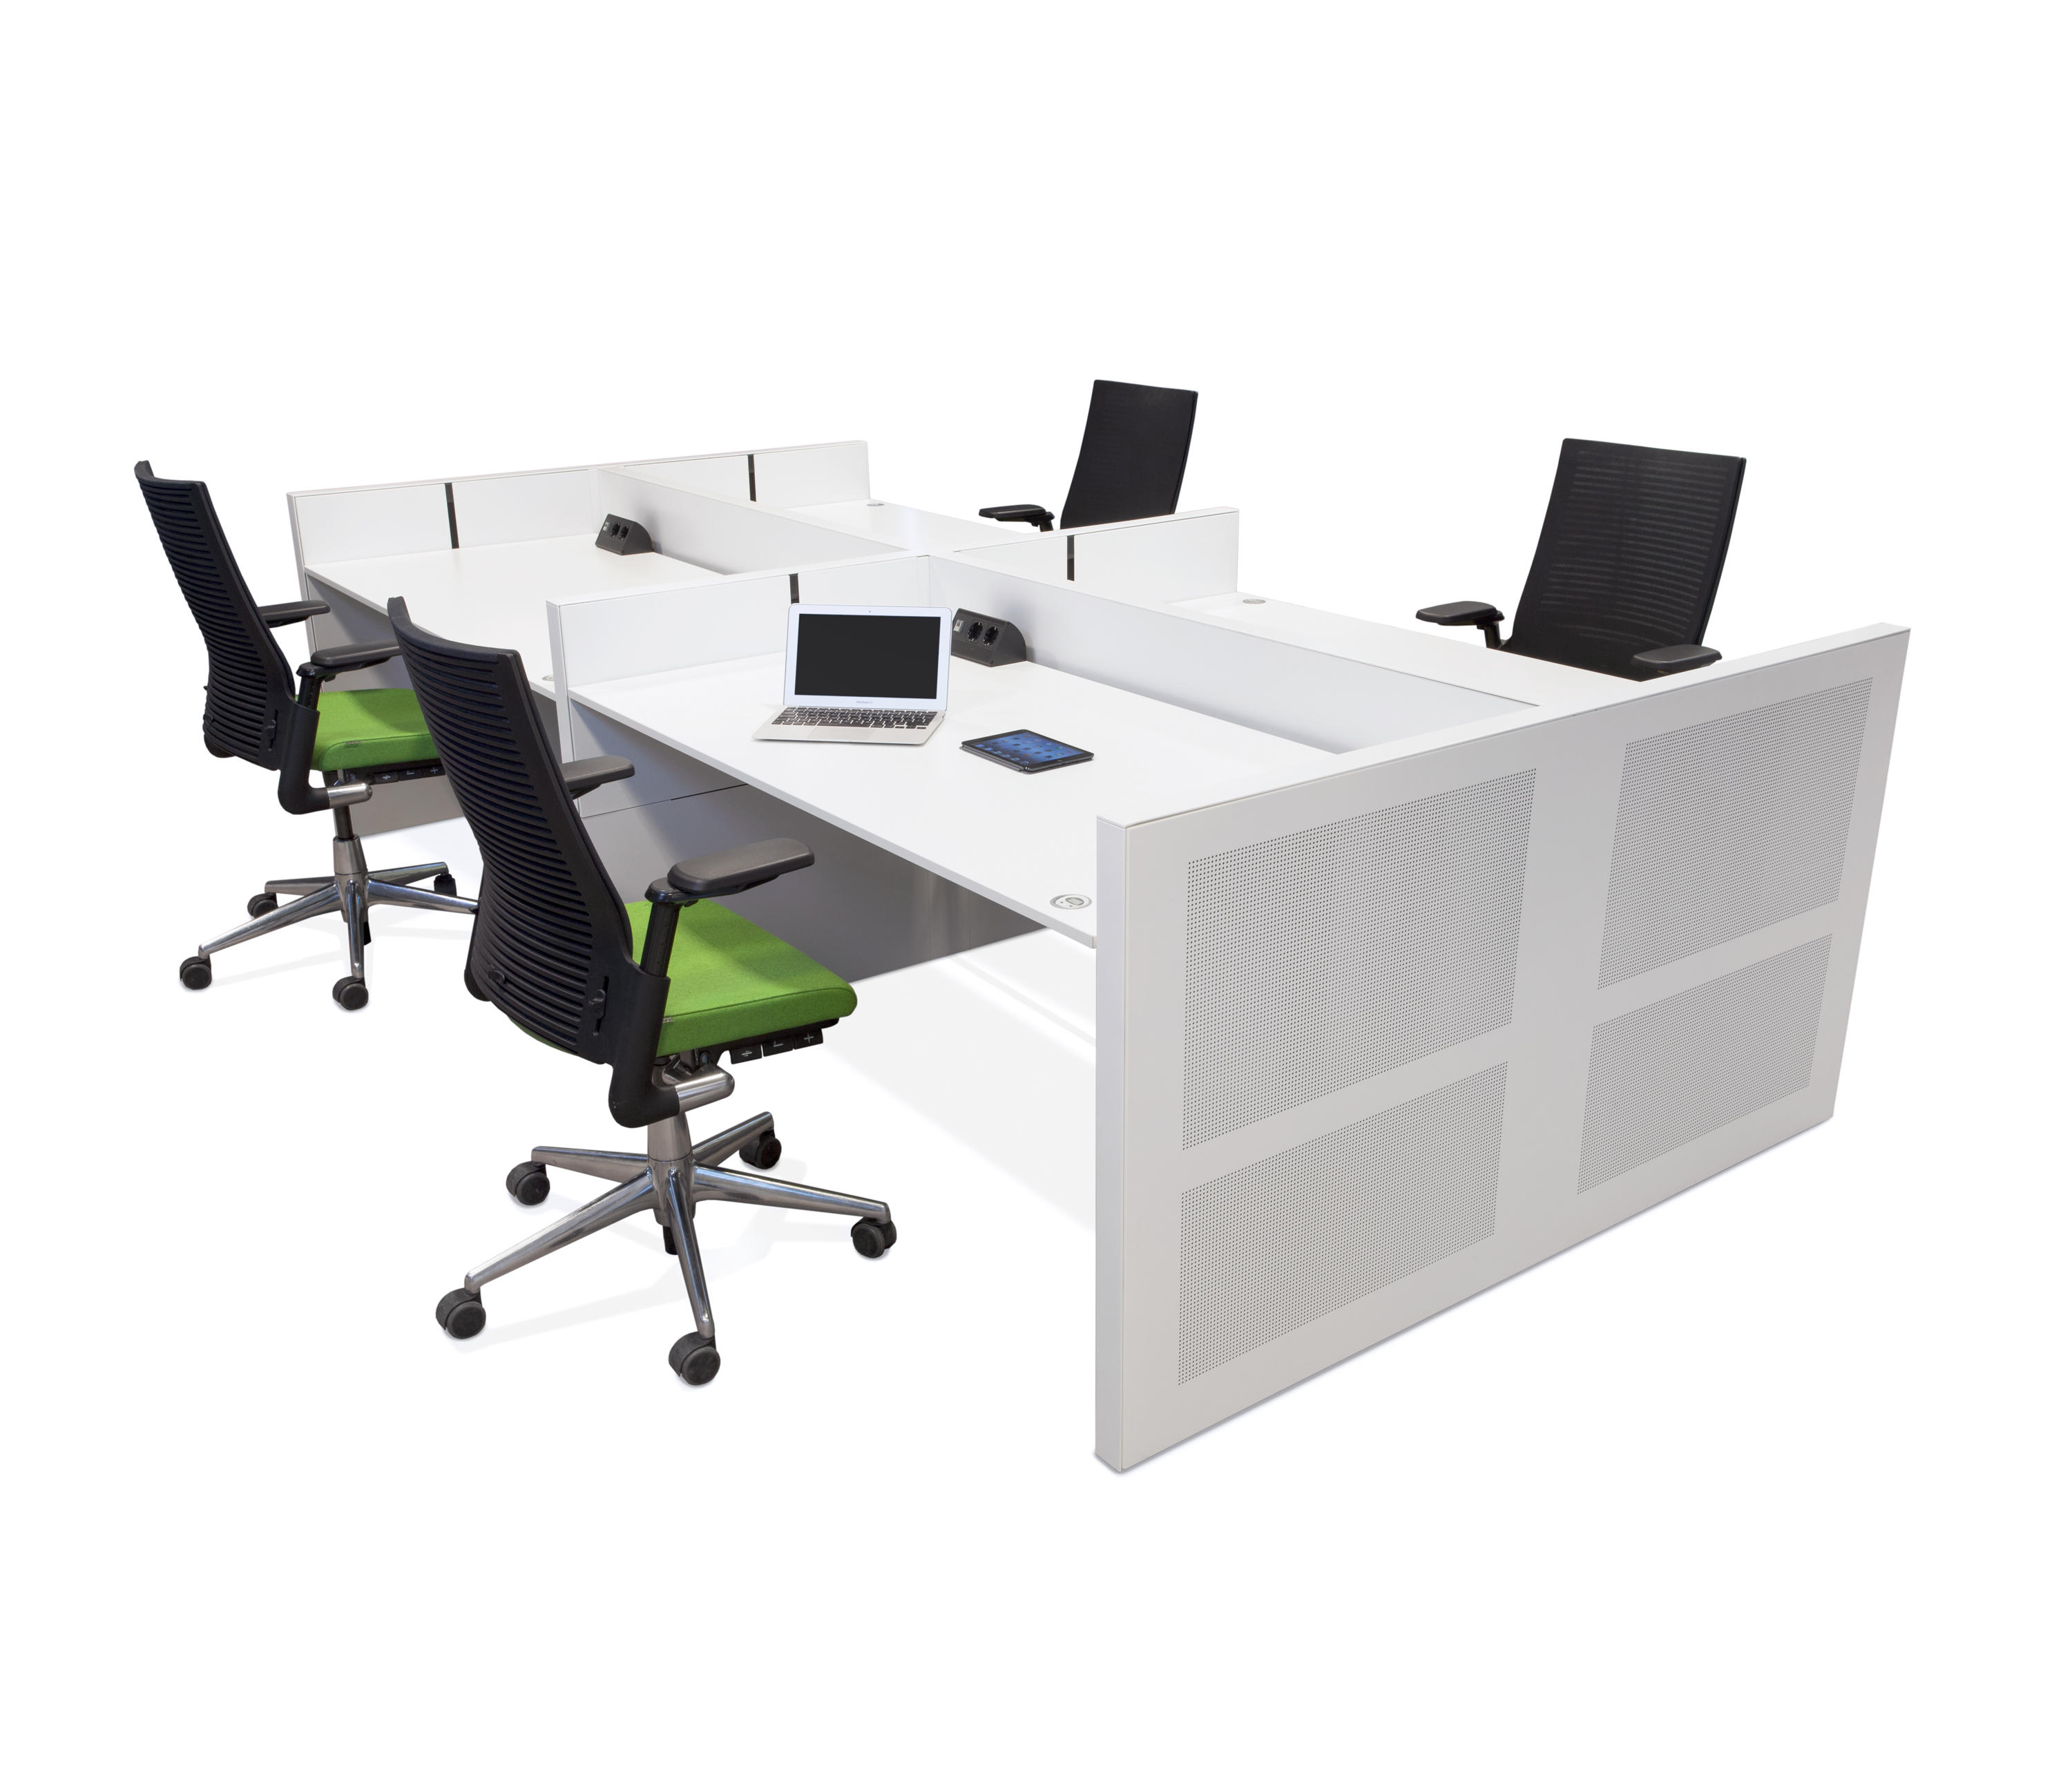 TEAM_UP - Desking systems from Ahrend | Architonic